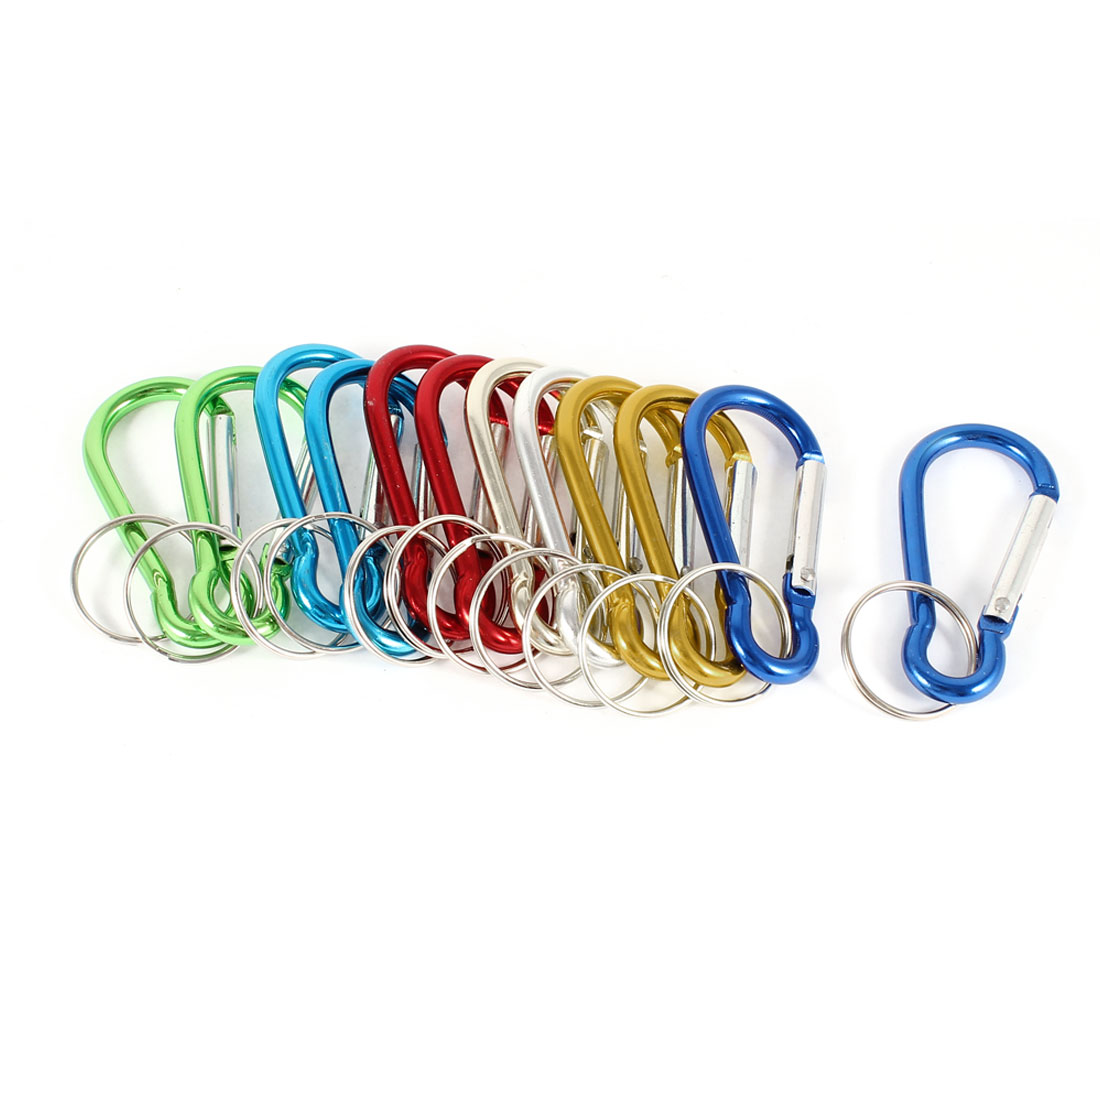 12 Pcs Aluminum Alloy Spring Loaded Gate Key Ring Carabiner Multicolor